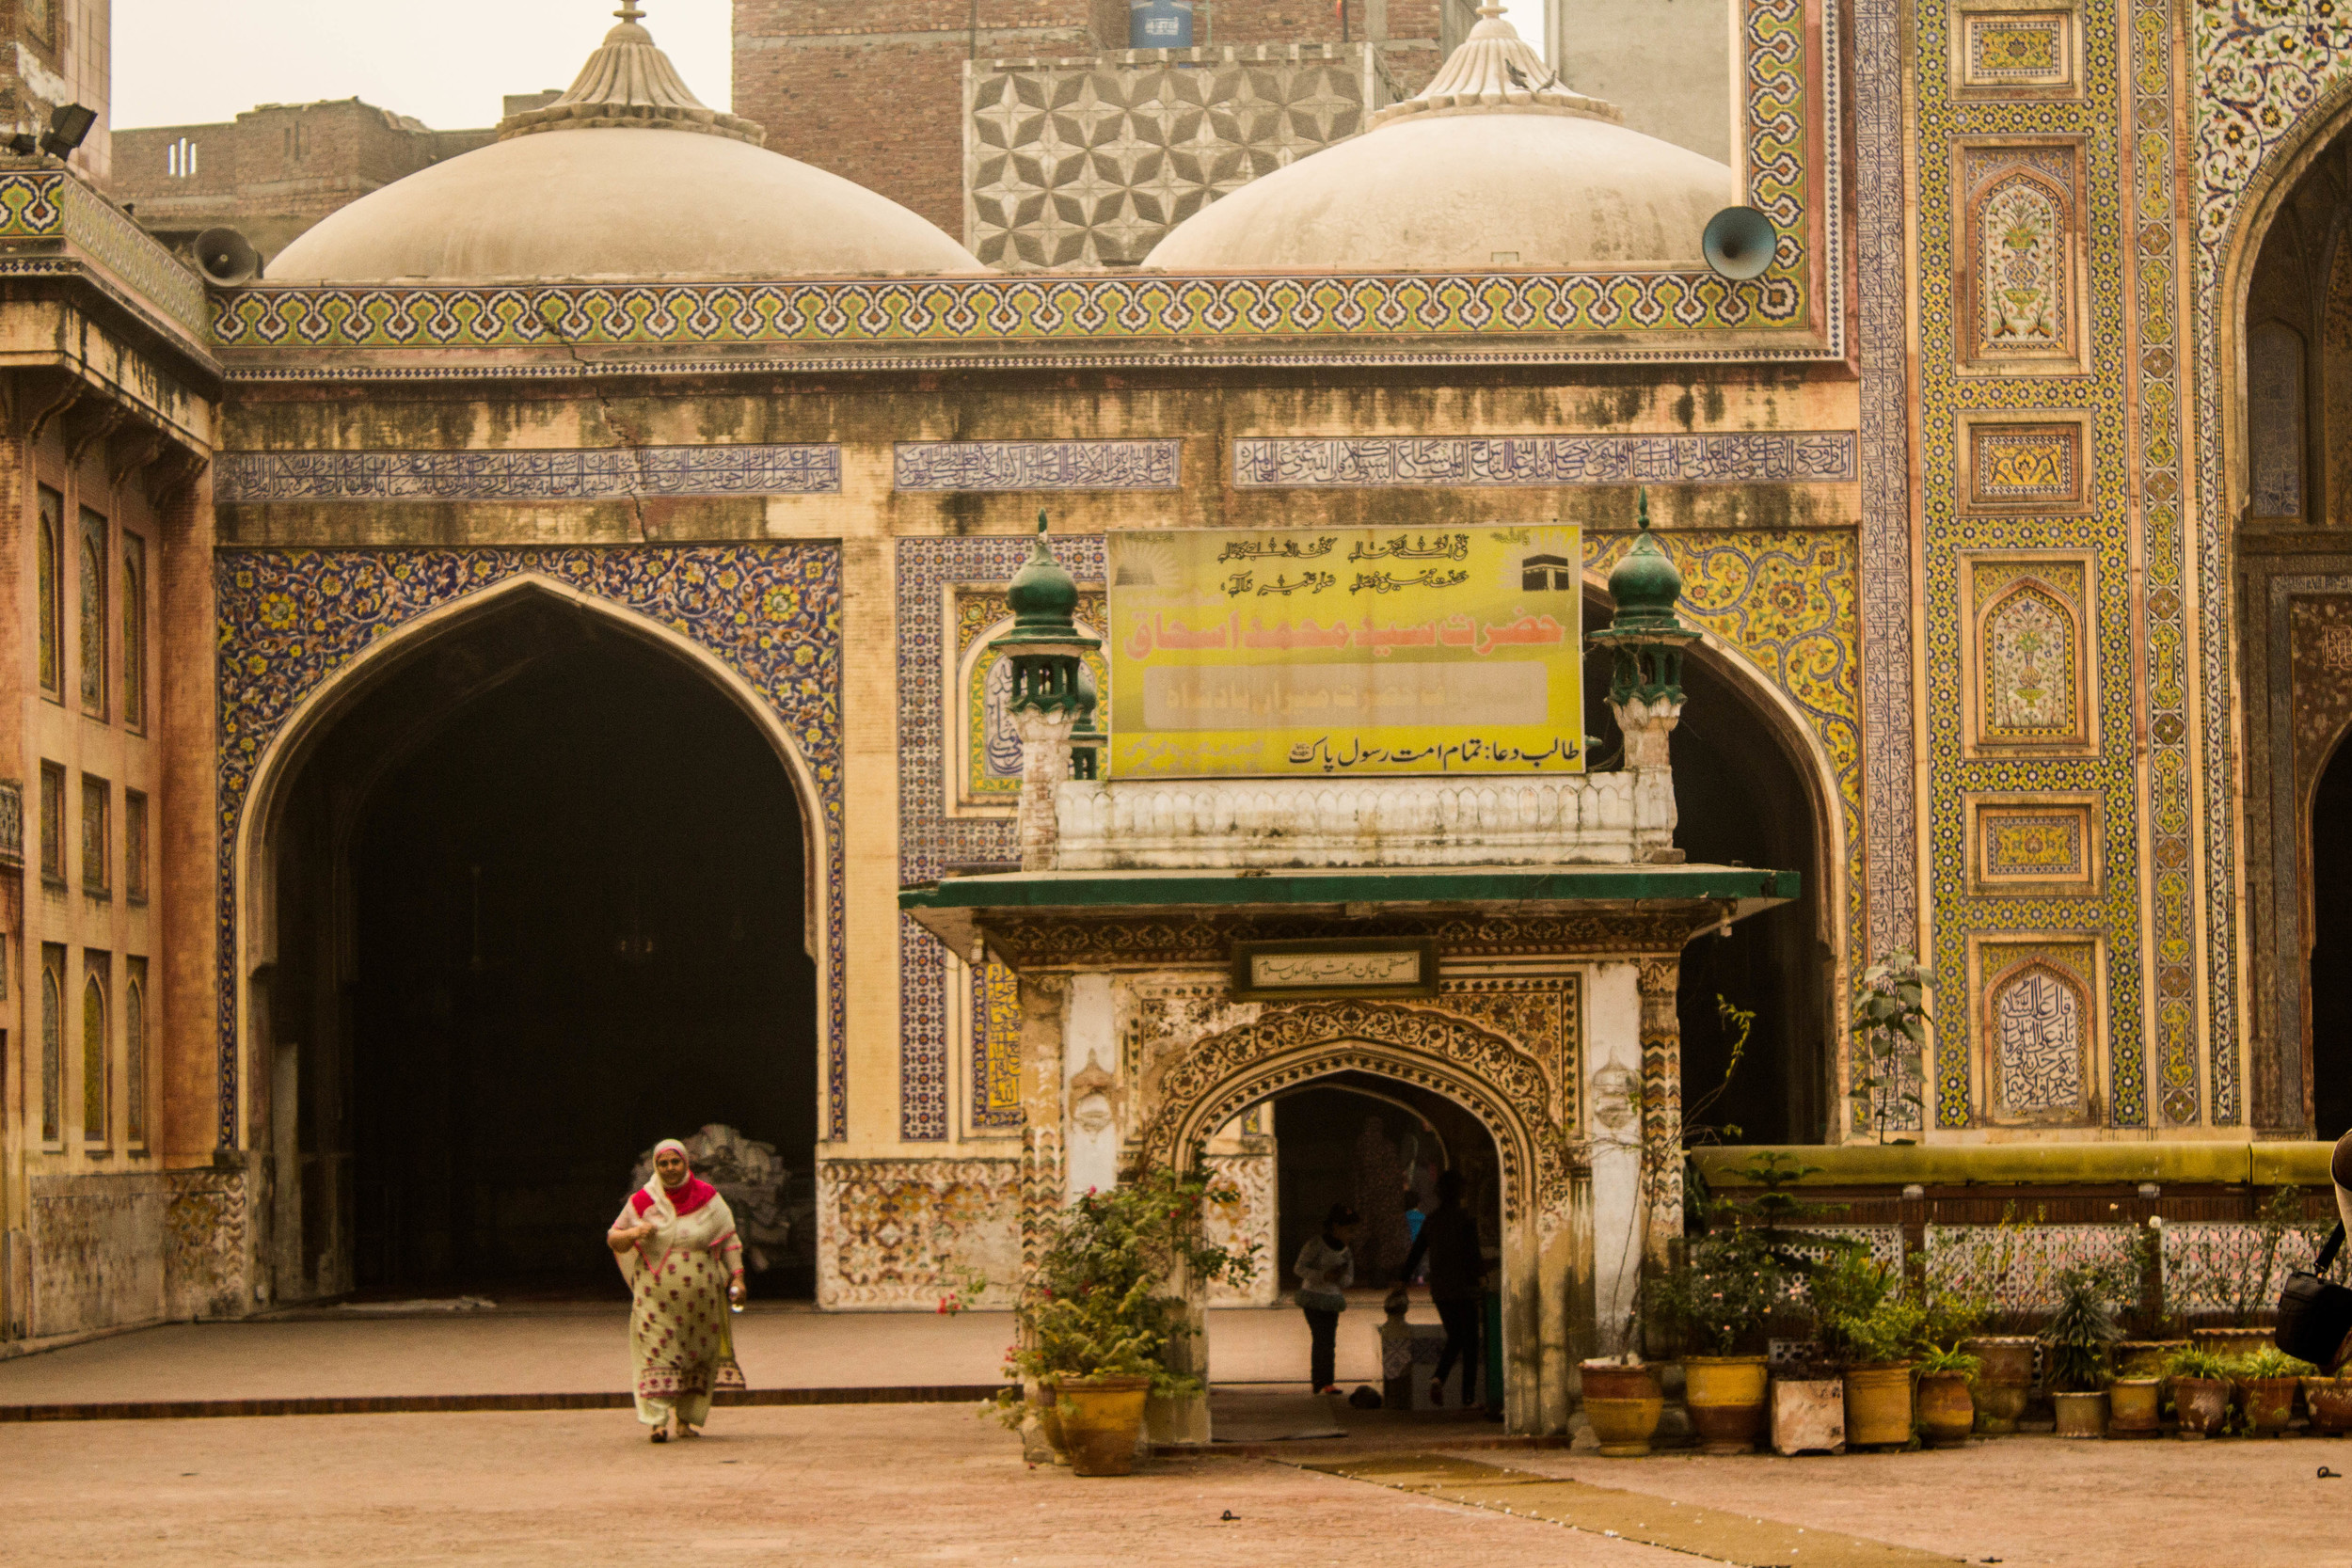 A woman strolls through the inner courtyard of the Wazir Khan Masjid inside Old Lahore.